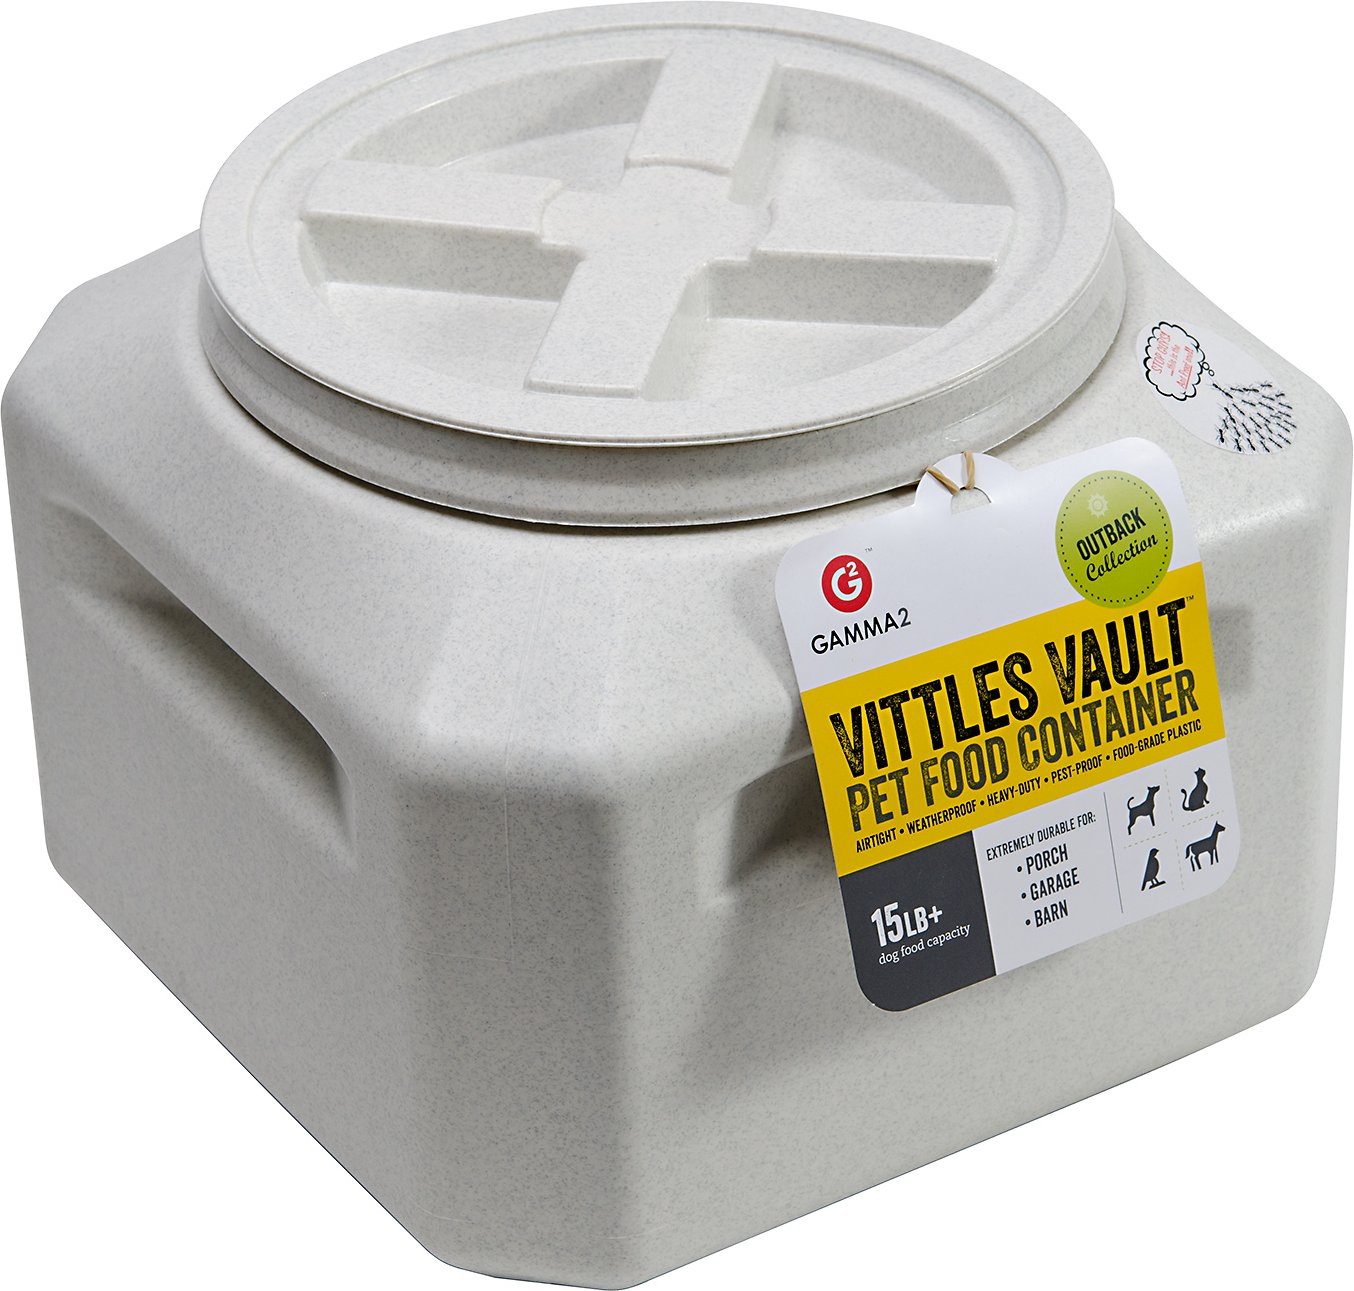 Gamma2 Vittles Vault Plus Pet Food Storage 15 lb Chewycom